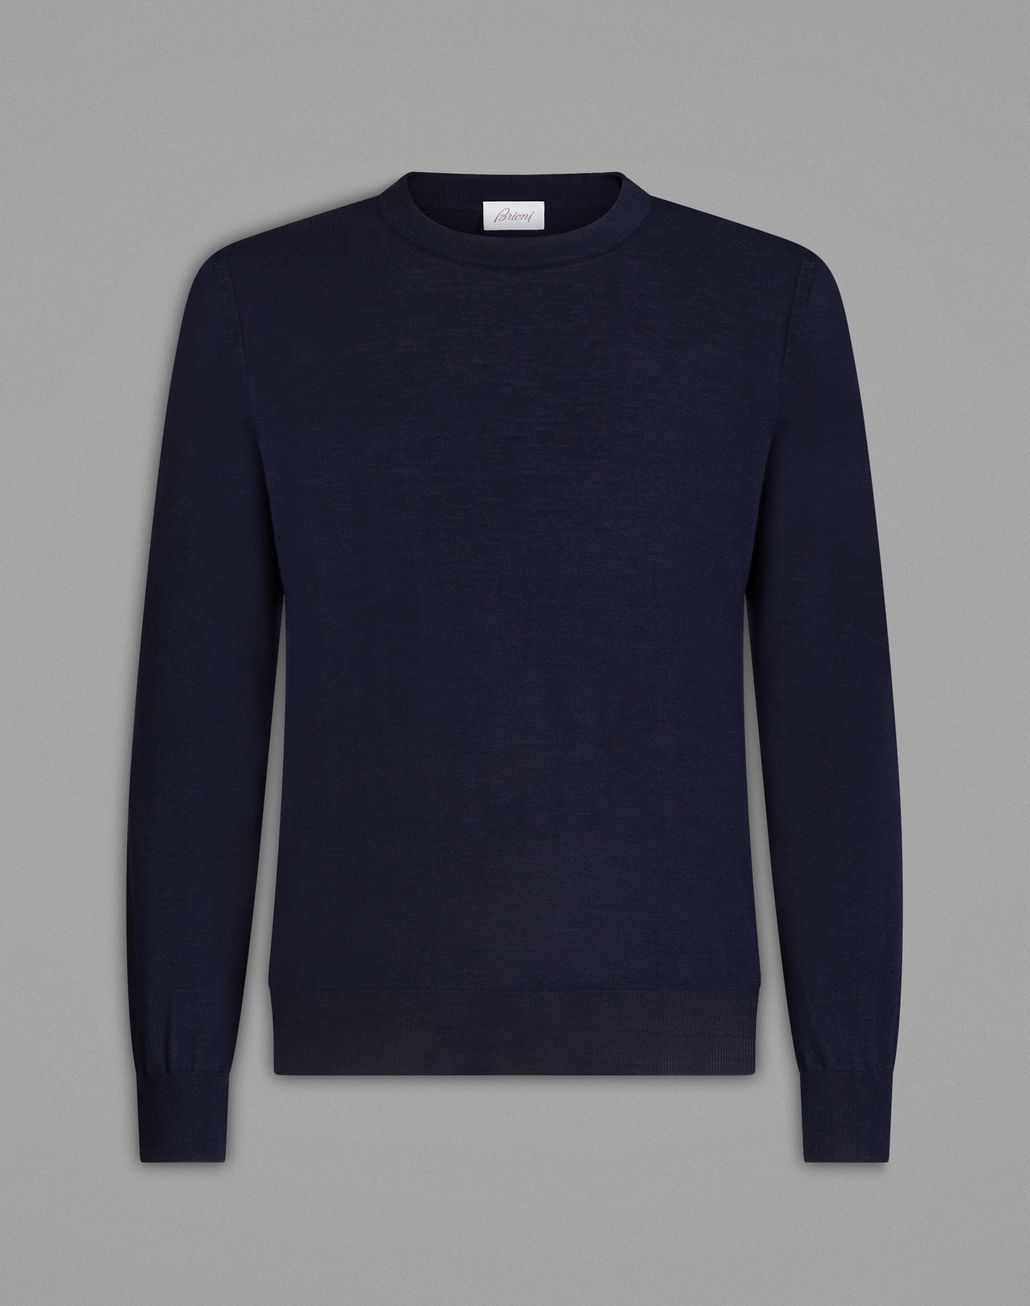 BRIONI 'Essential' Navy Blue Crew-Neck Sweater Knitwear [*** pickupInStoreShippingNotGuaranteed_info ***] f